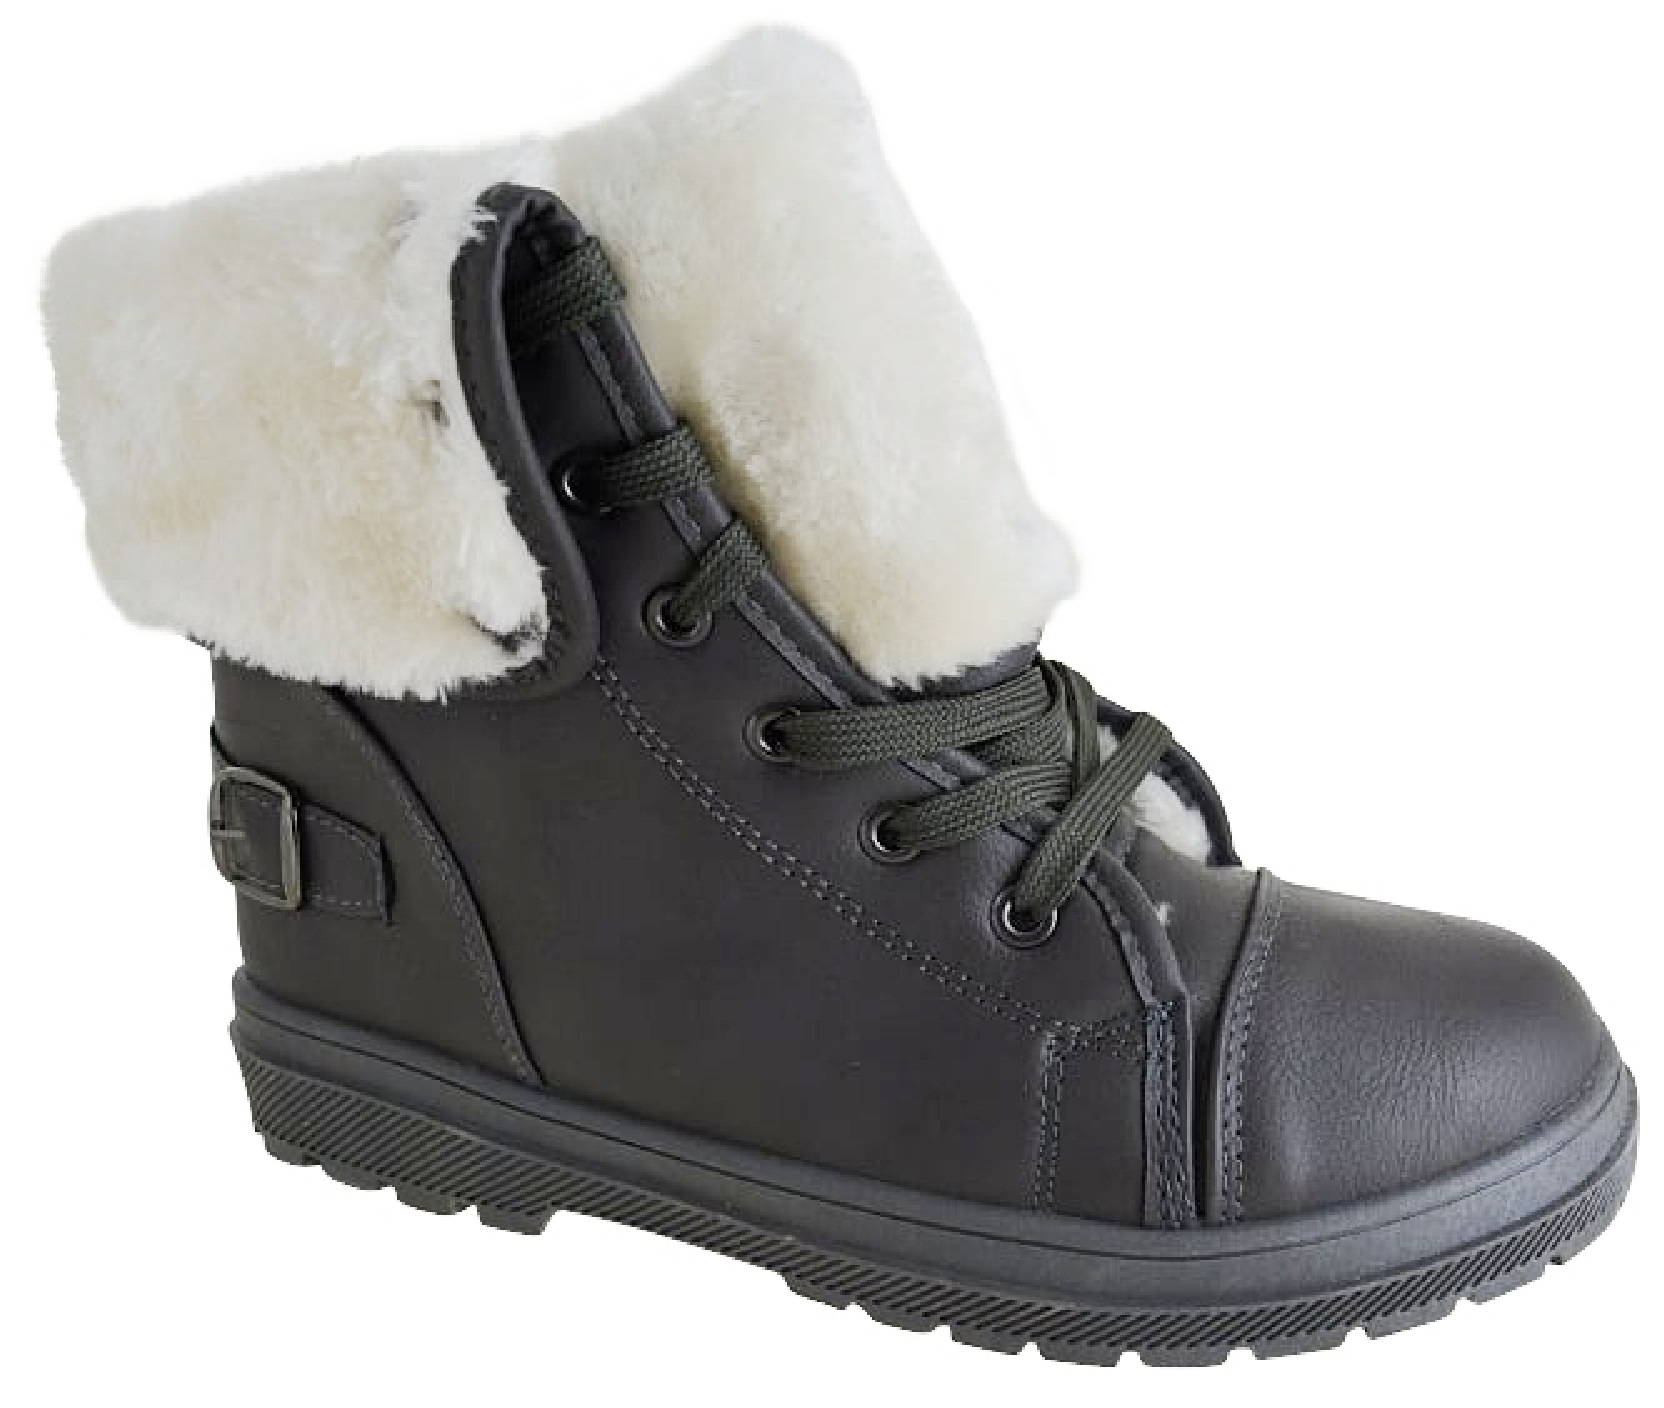 LADIES WINTER FAUX FUR LINED SHOES WOMENS CASUAL COMFY TRAINERS ANKLE BOOTS SIZE